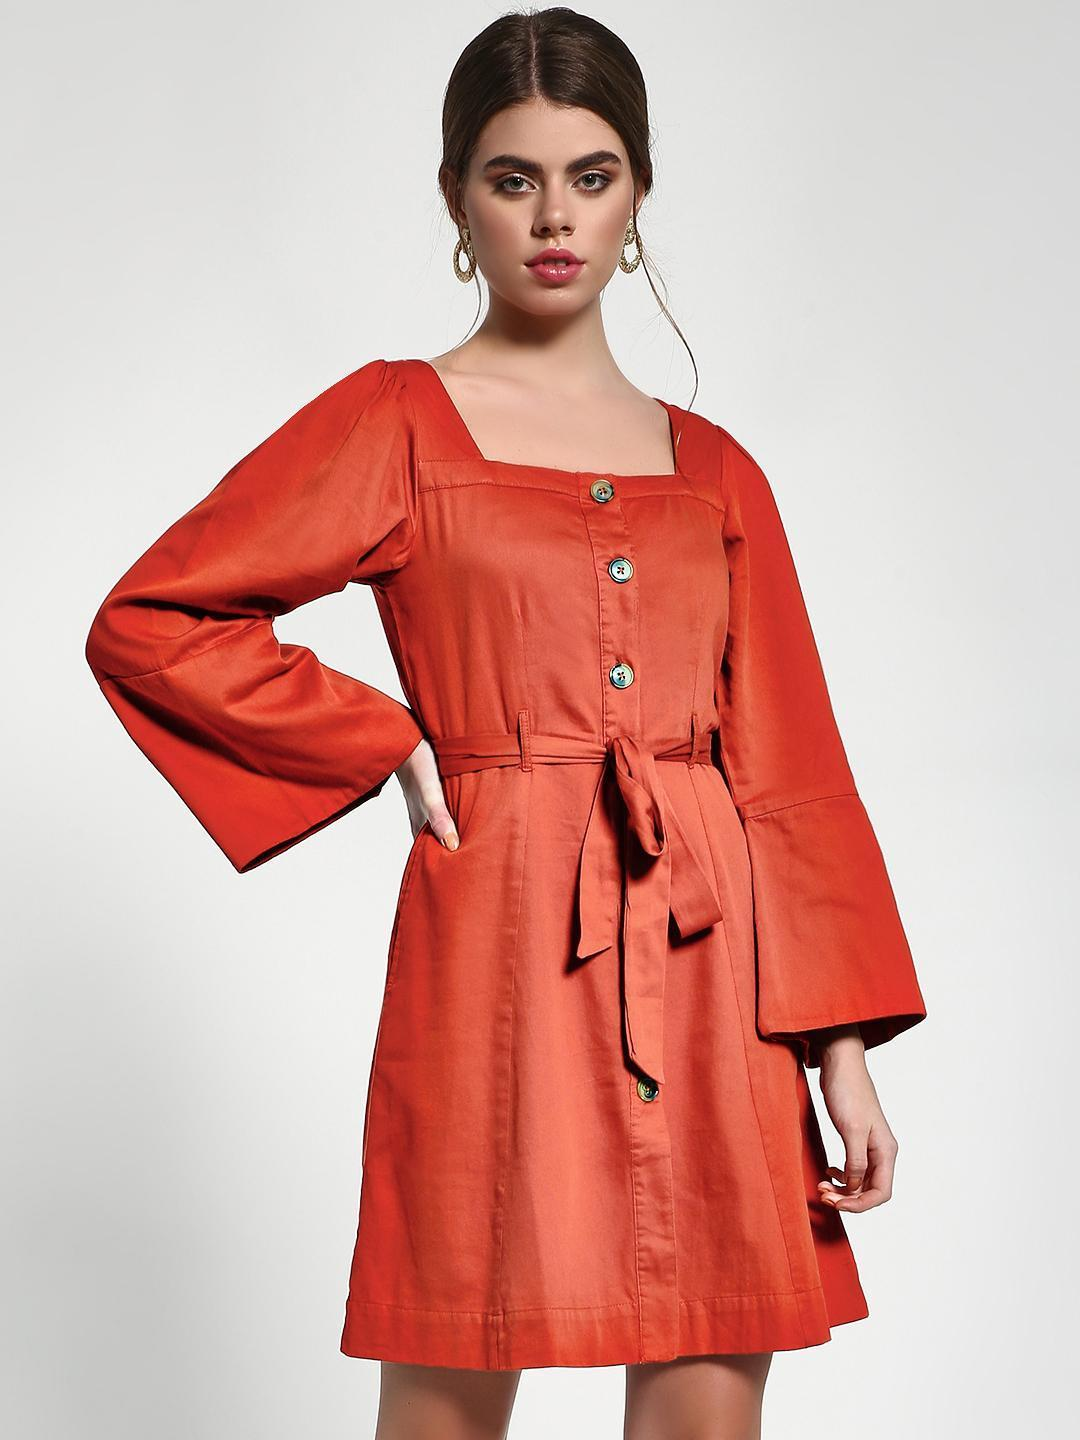 Sbuys Rust Square Neck Button-Down Shift Dress 1